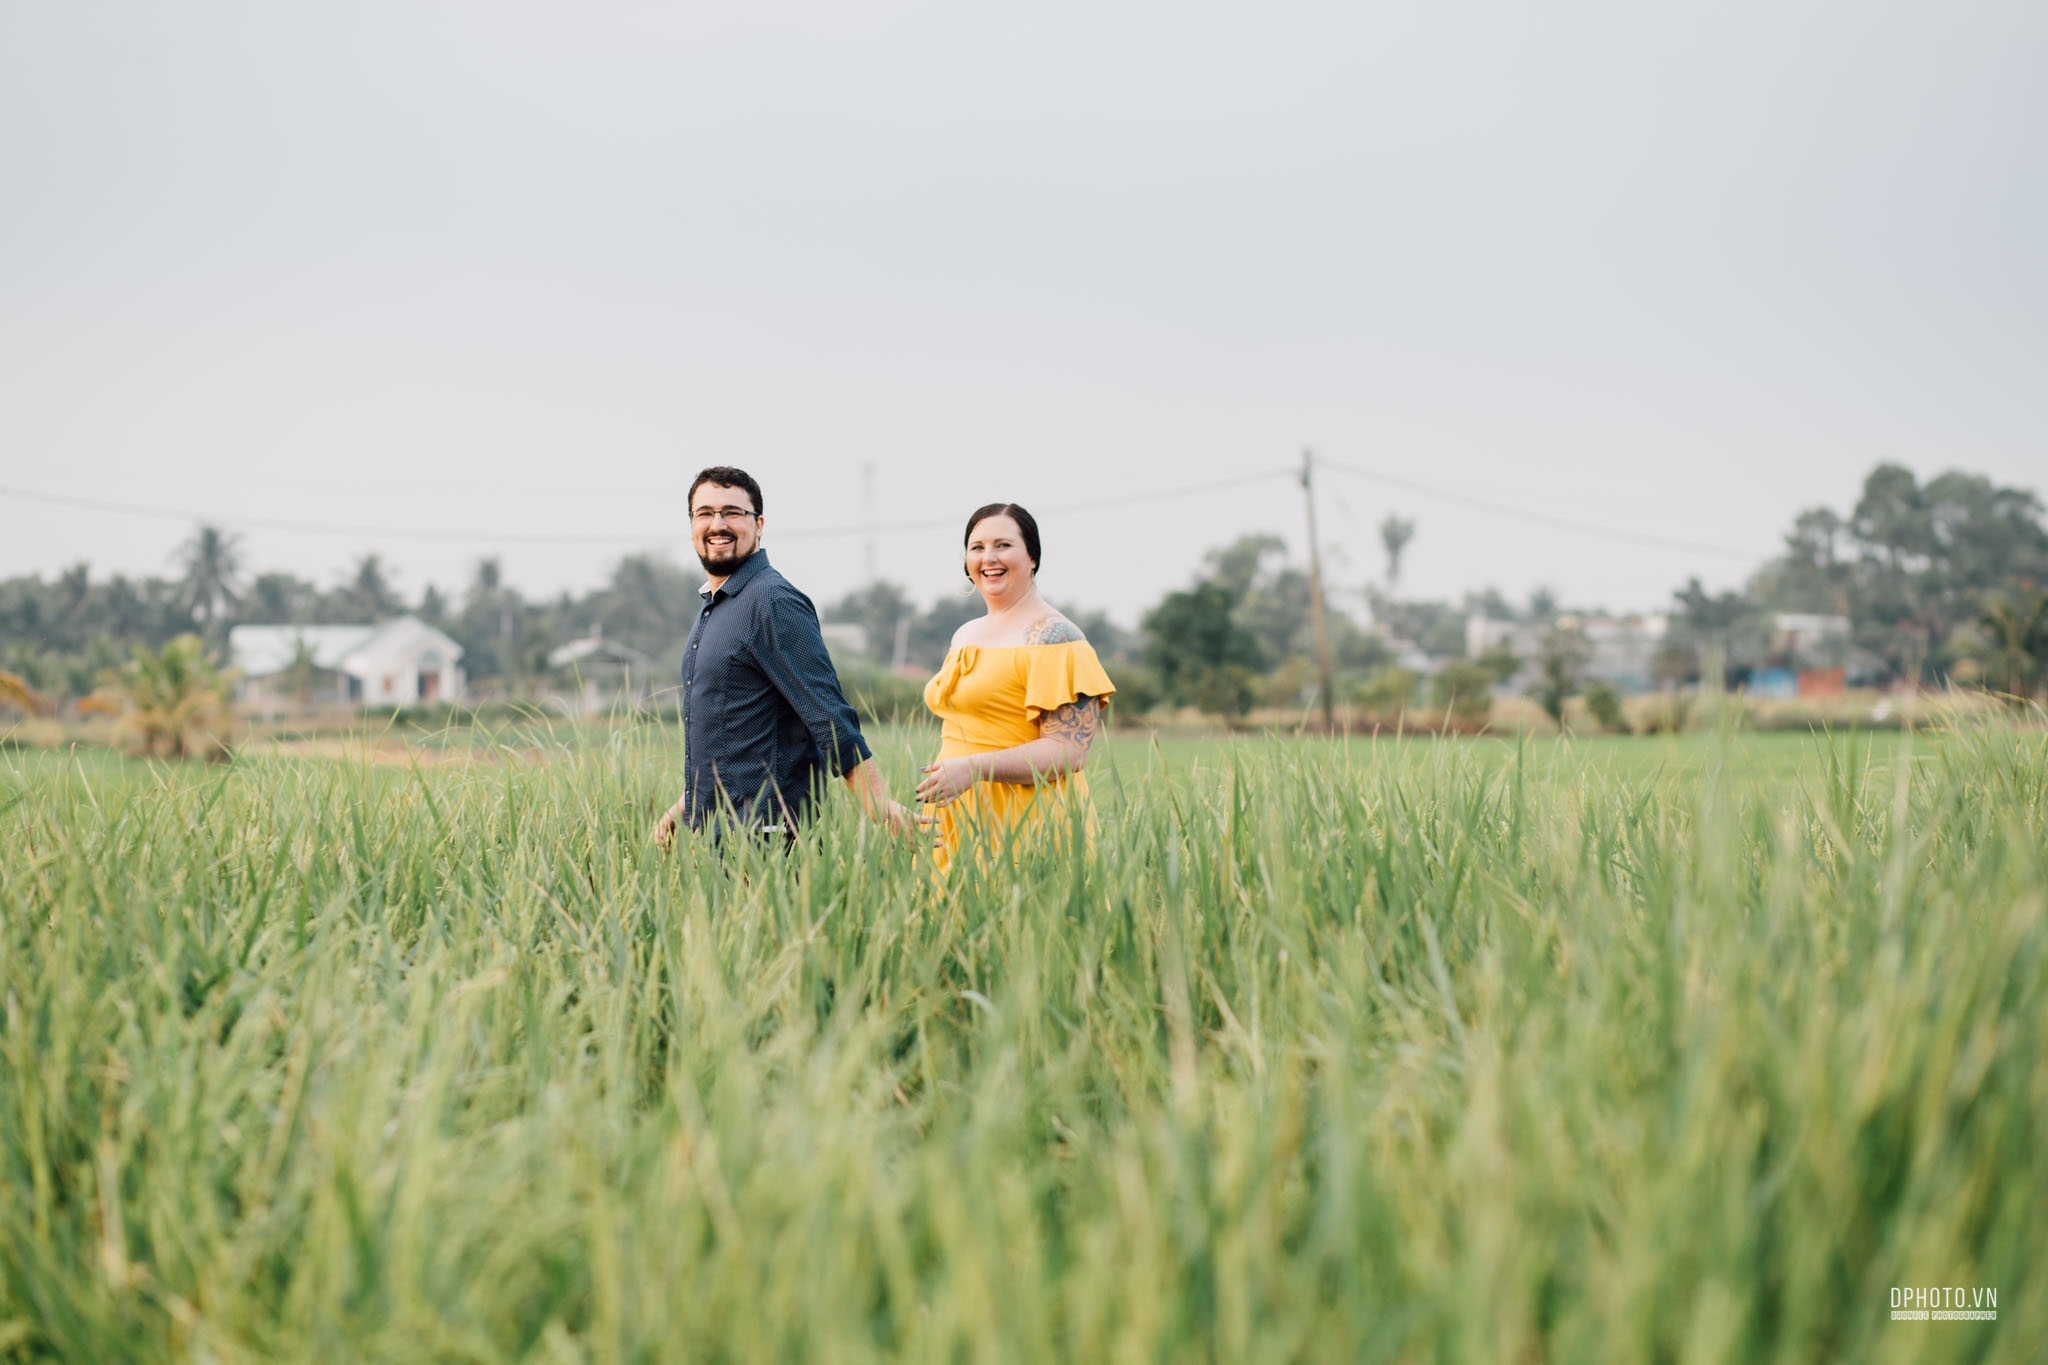 engagement_photo_in_sai_gon_ho_chi_minh_viet_nam89